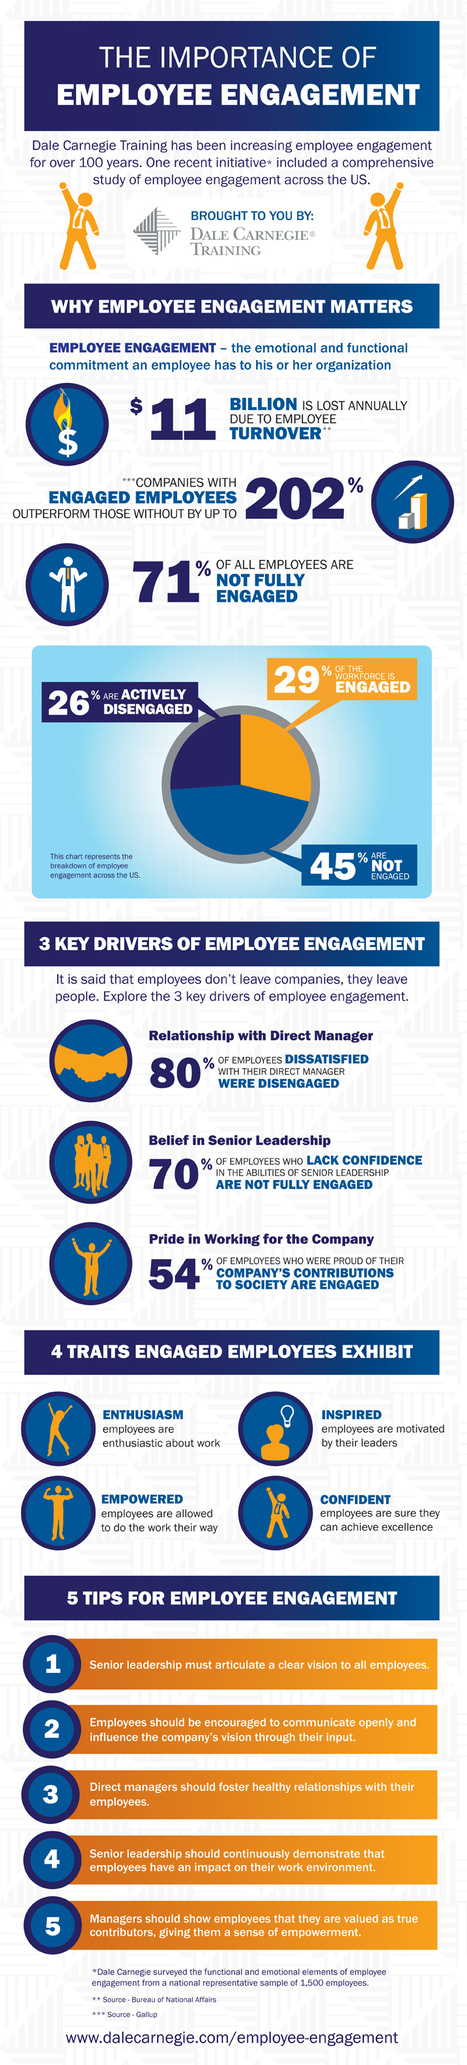 How Important is Employee Engagement? [INFOGRAPHIC] | Improving Organizational Effectiveness & Performance | Scoop.it